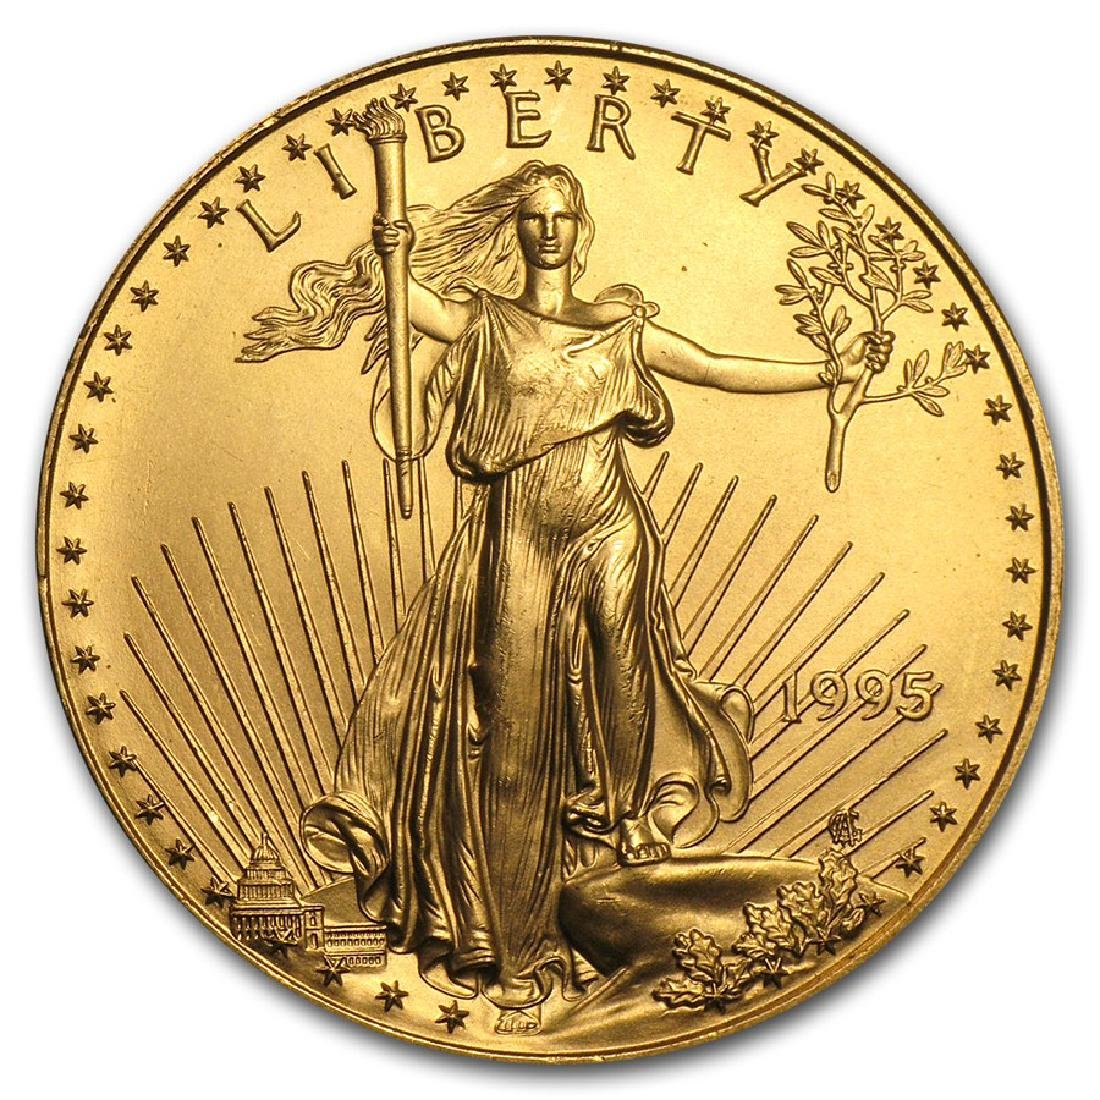 1995 $50 American Eagle Gold Coin